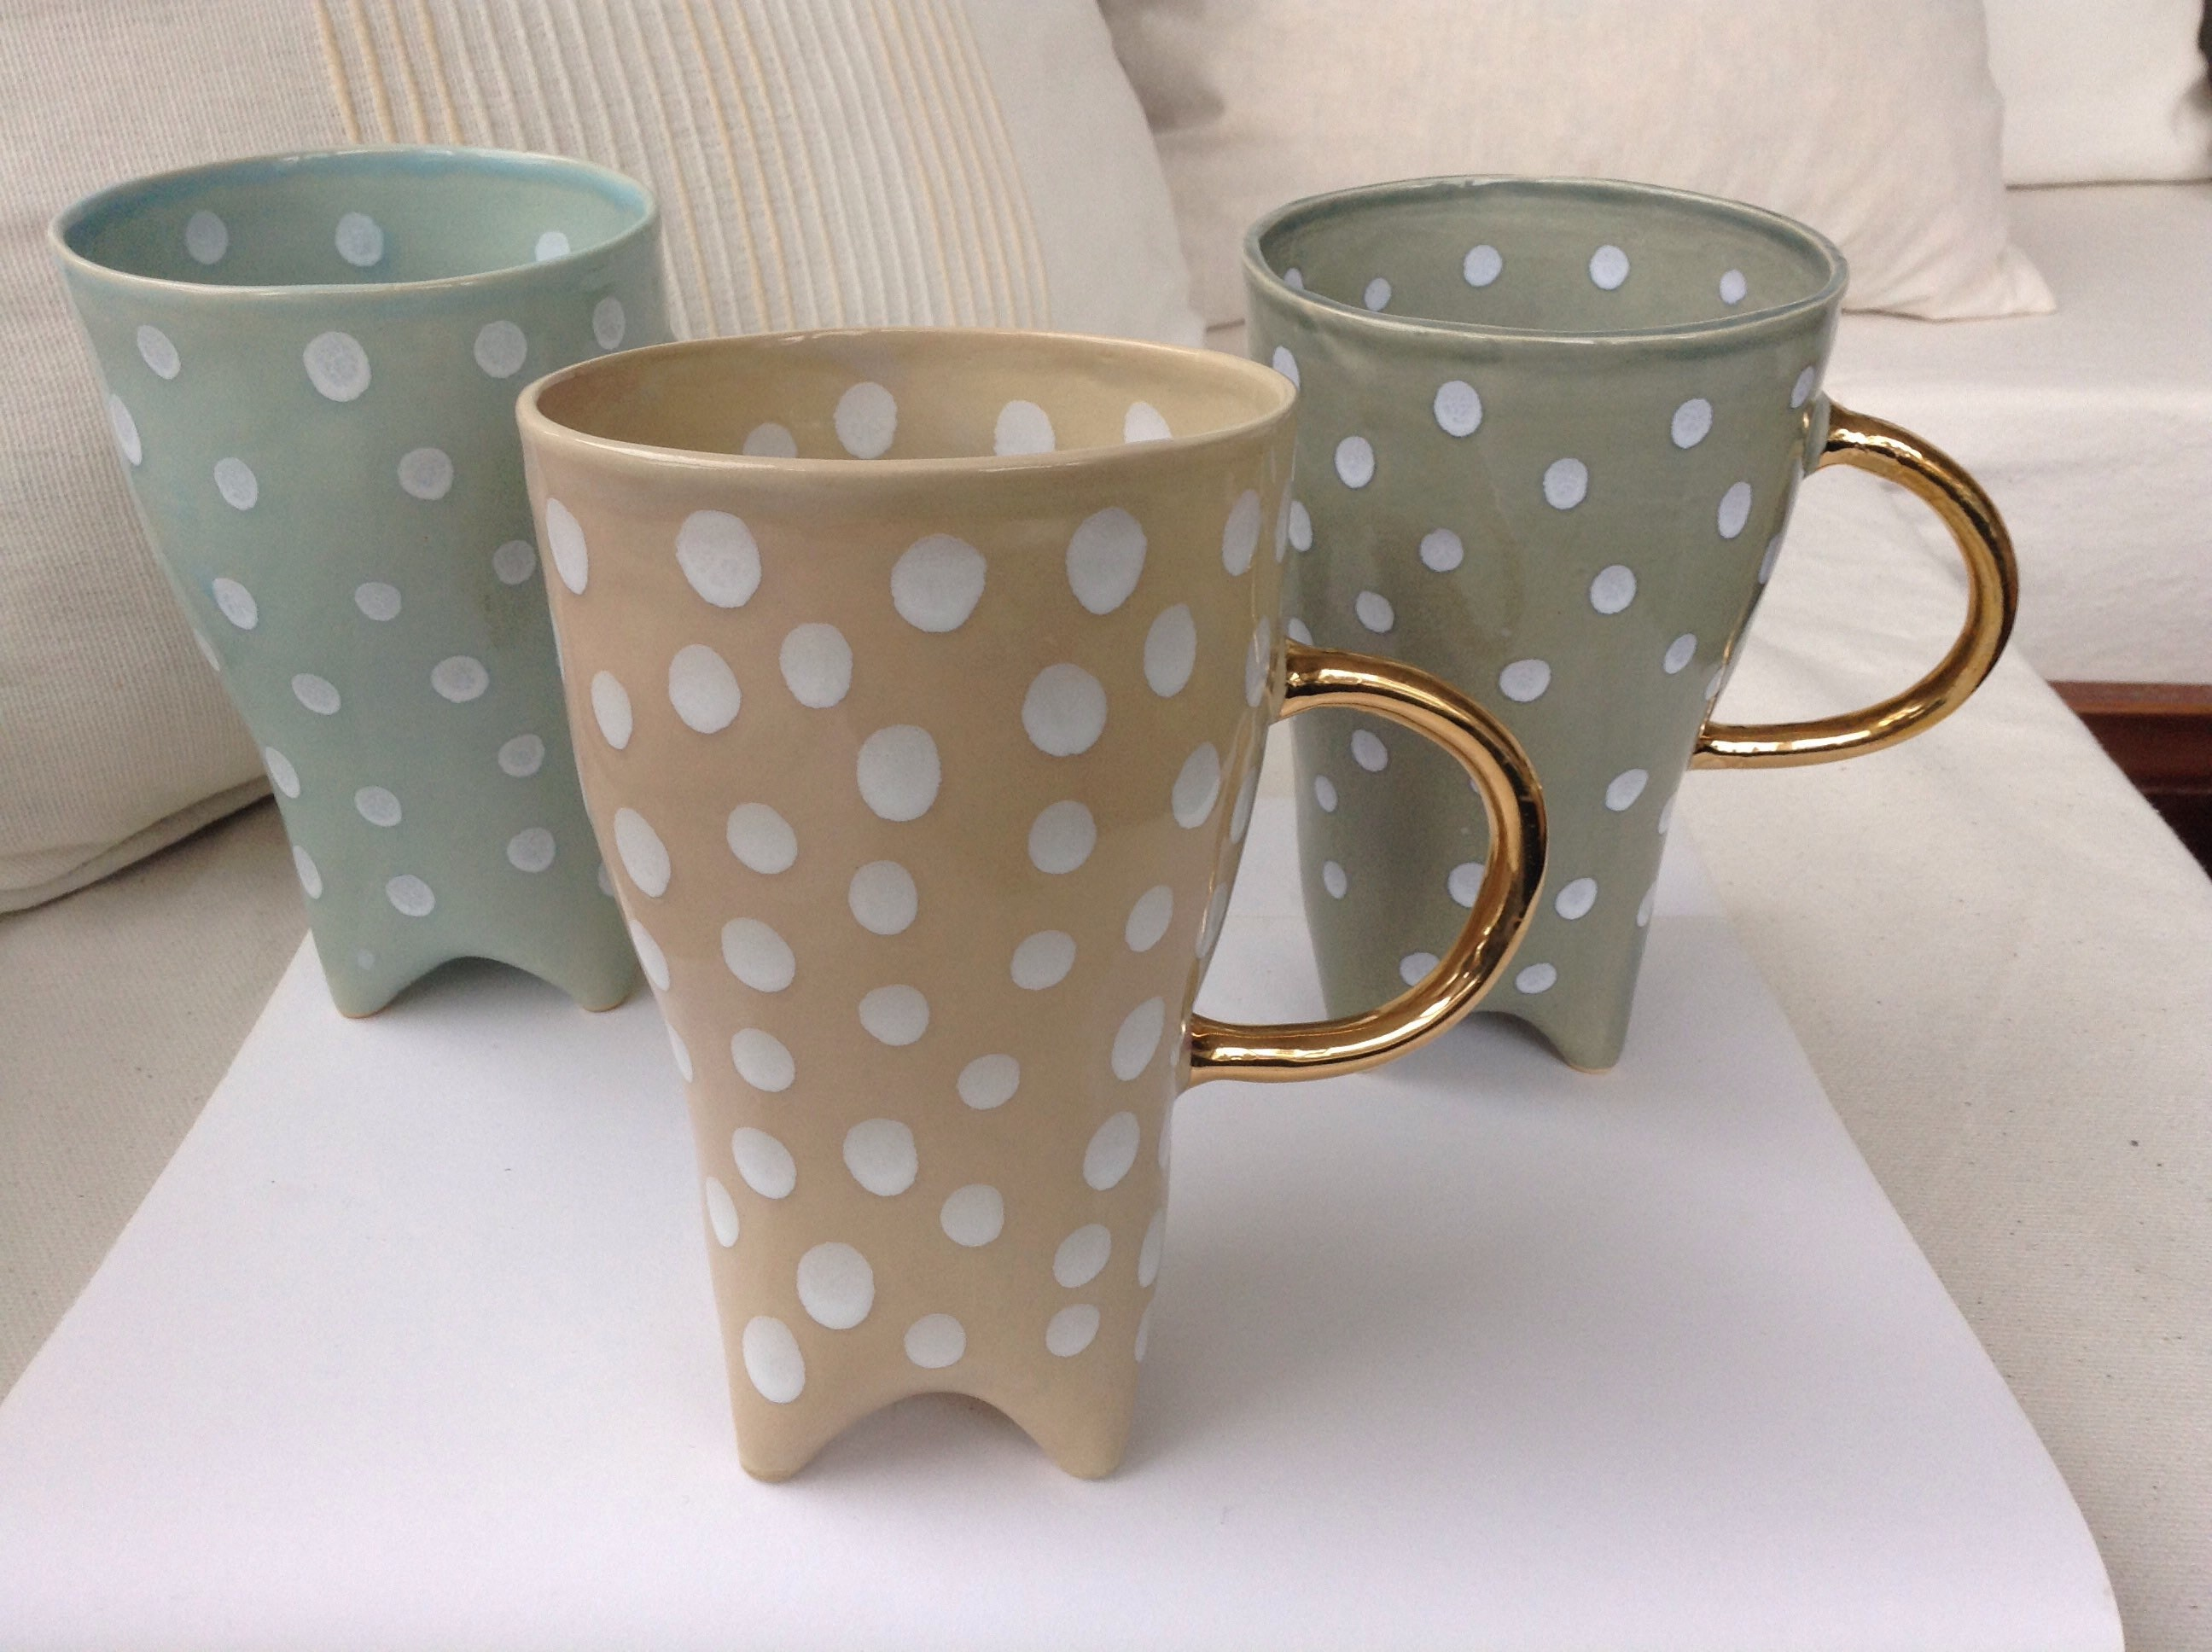 New Polka Dot Mania Cups 135 Oz Ceramic Mug Tall Elegant Etsy